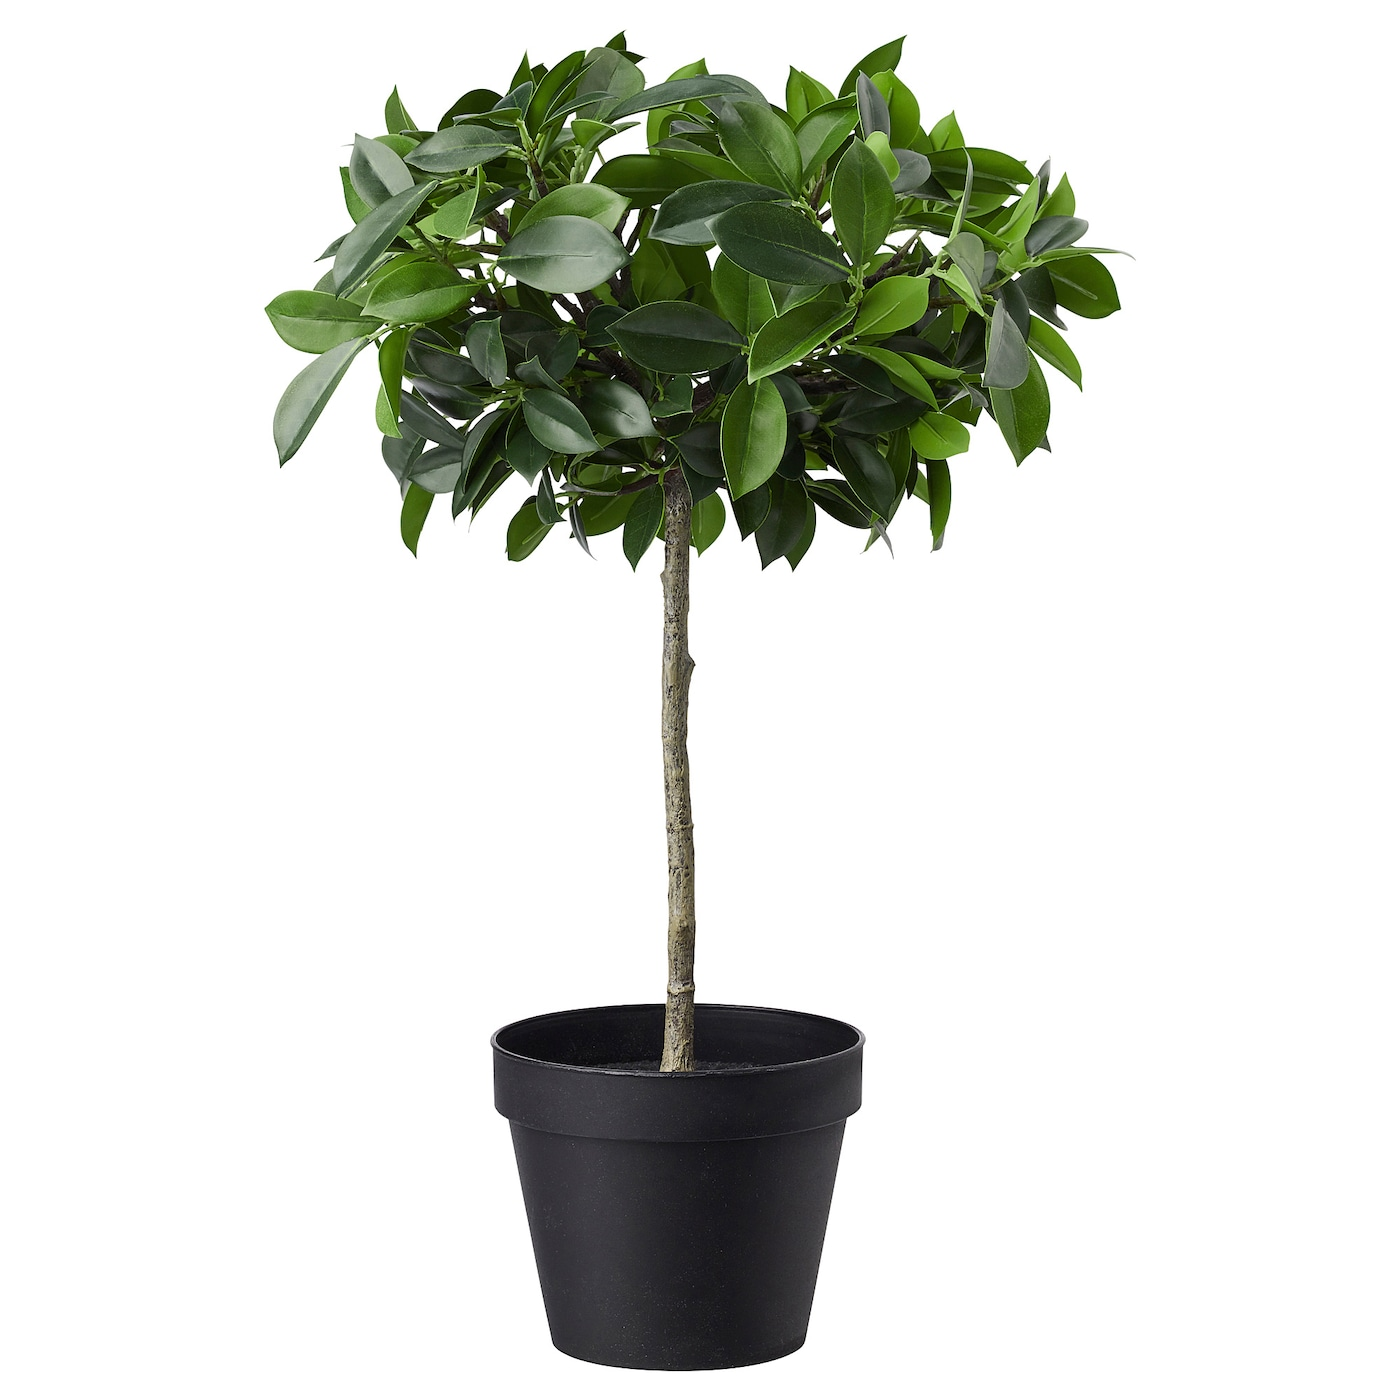 FEJKA Artificial potted plant - indoor/outdoor, Weeping fig stem - IKEA